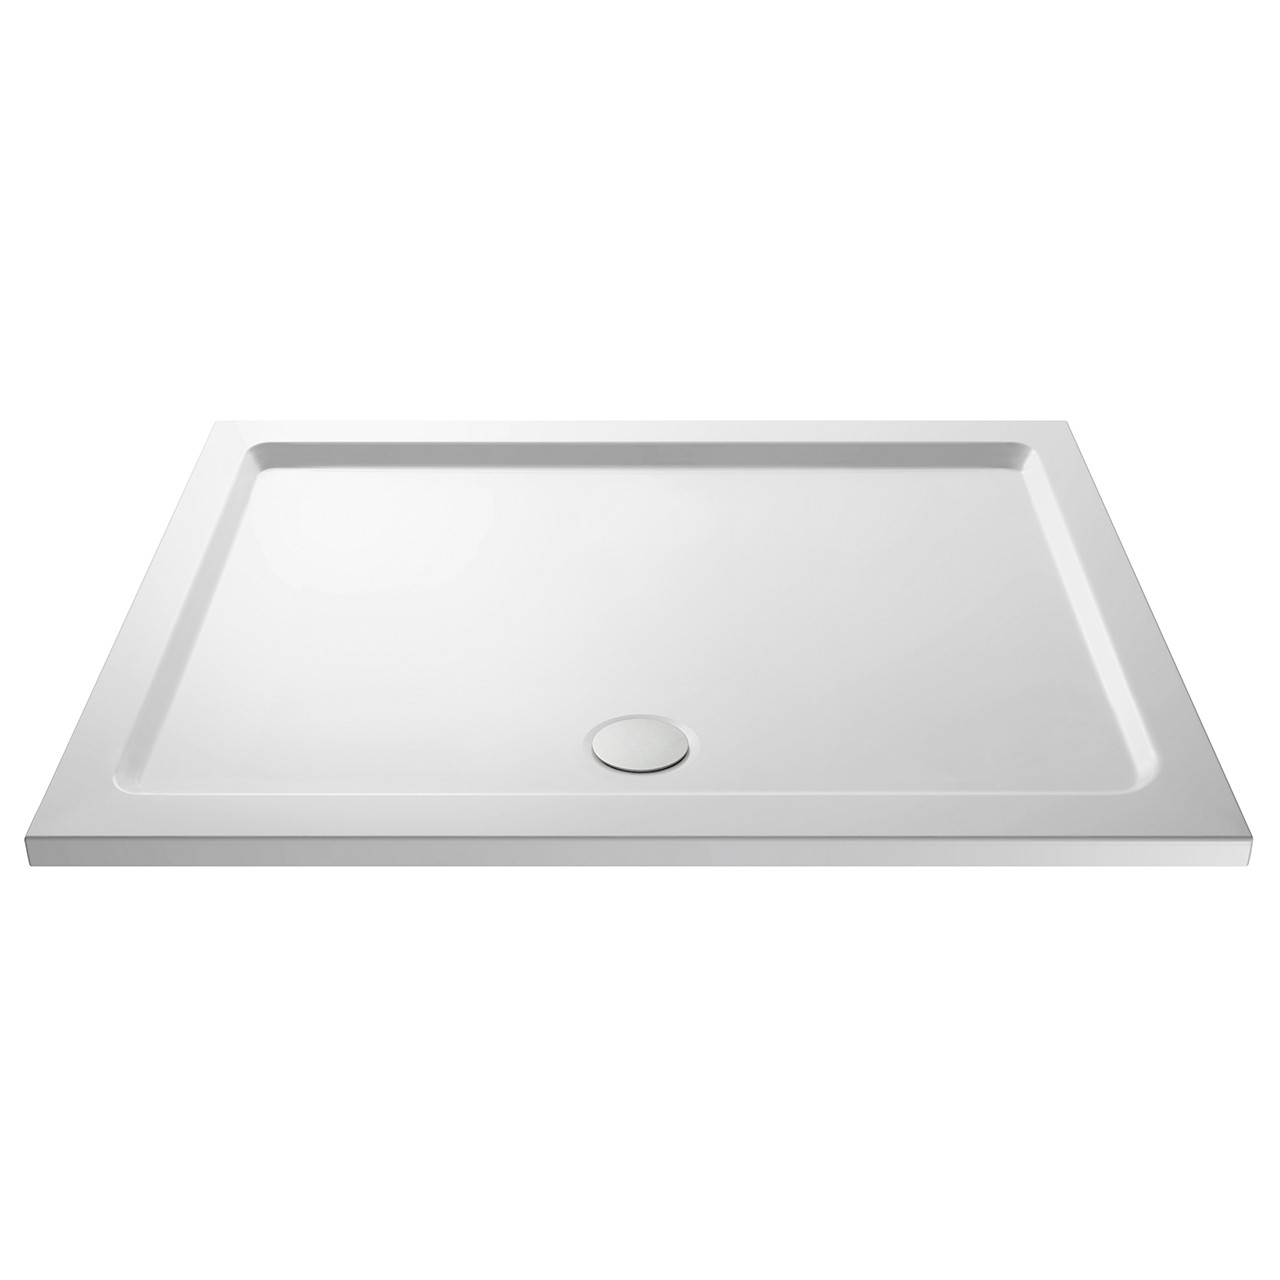 Premiere Pearlstone 1500mm x 700mm x 40mm Rectangular Shower Tray with Centre Waste - NTP041